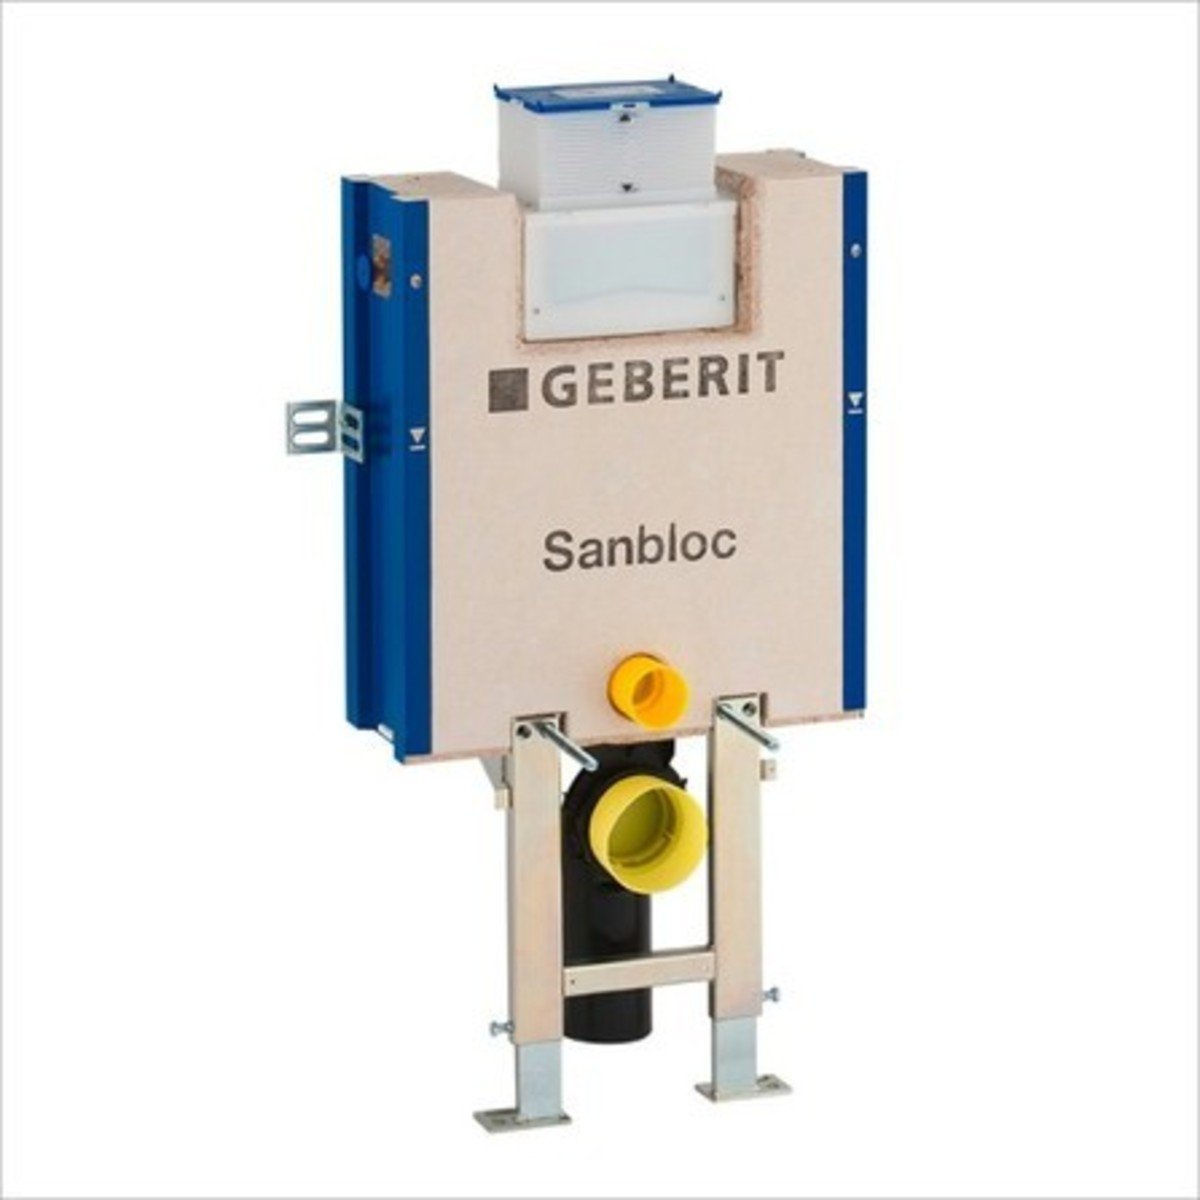 Geberit sanbloc wc element voor wandcloset h83 met omega for Geberit products